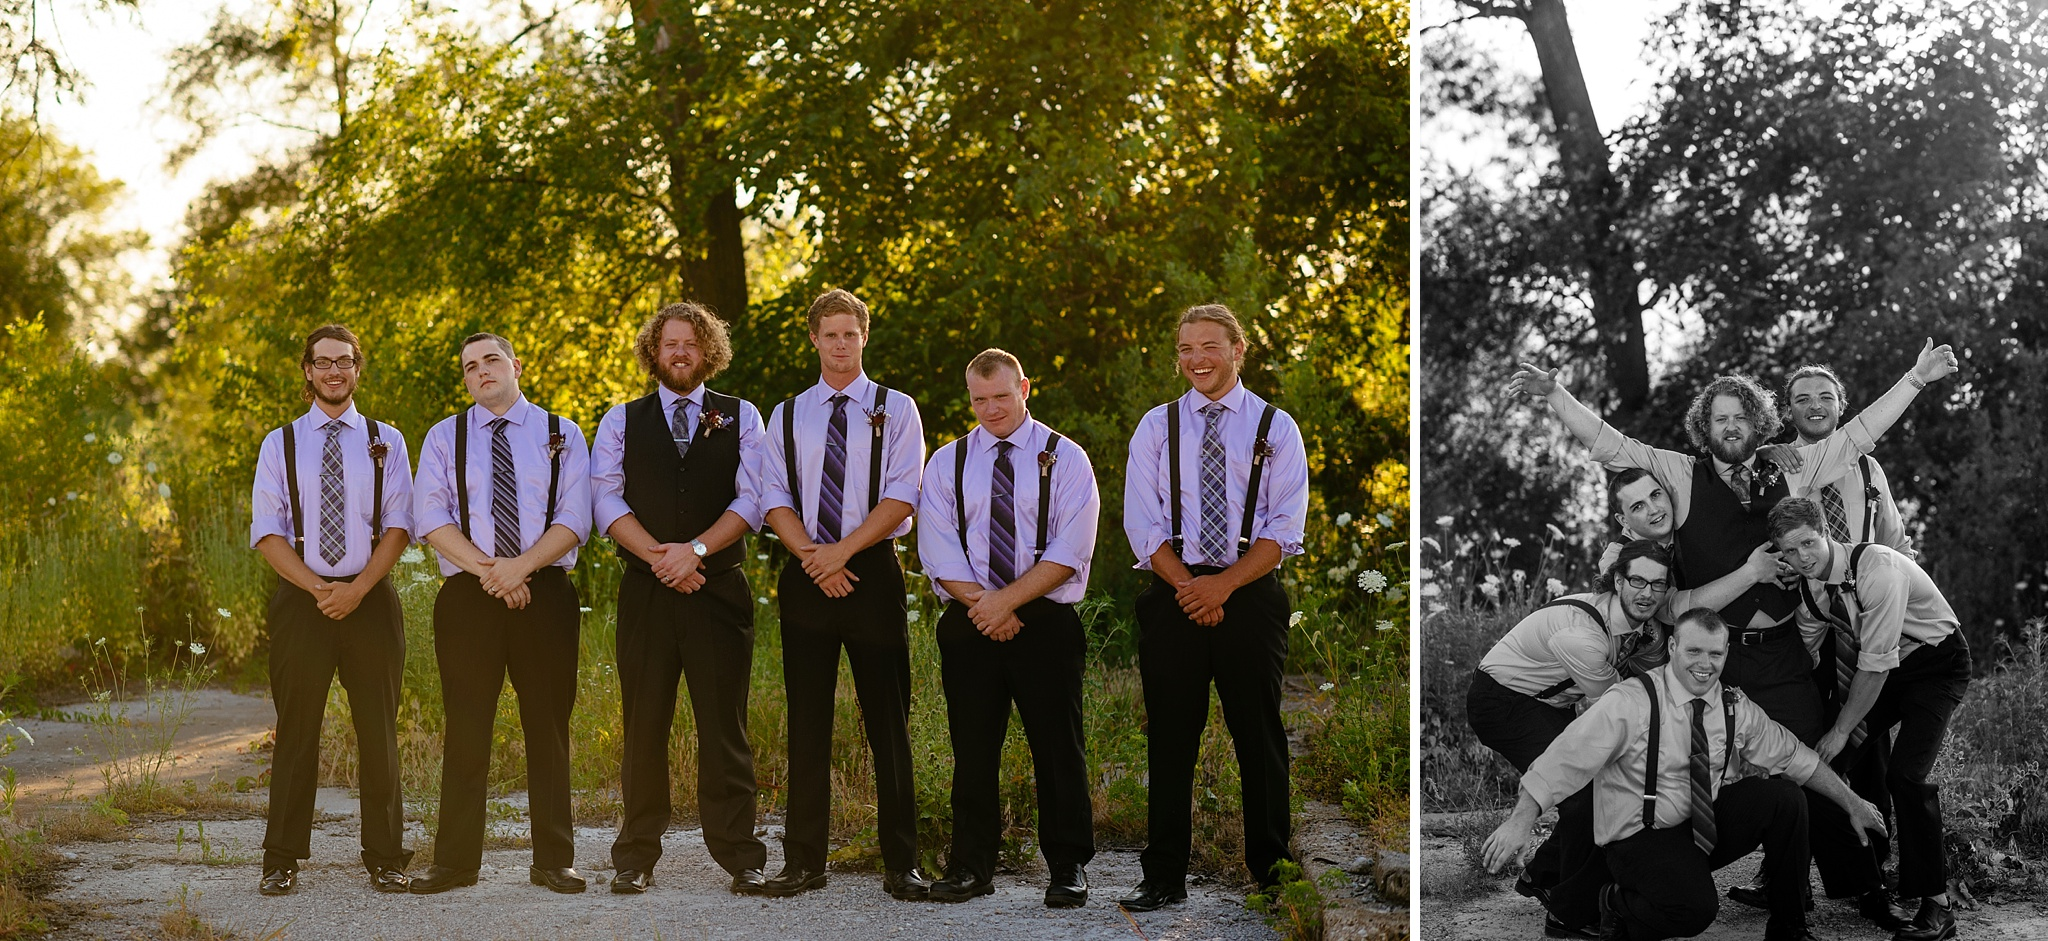 Photos of Groomsment outdoors by trees being silly.